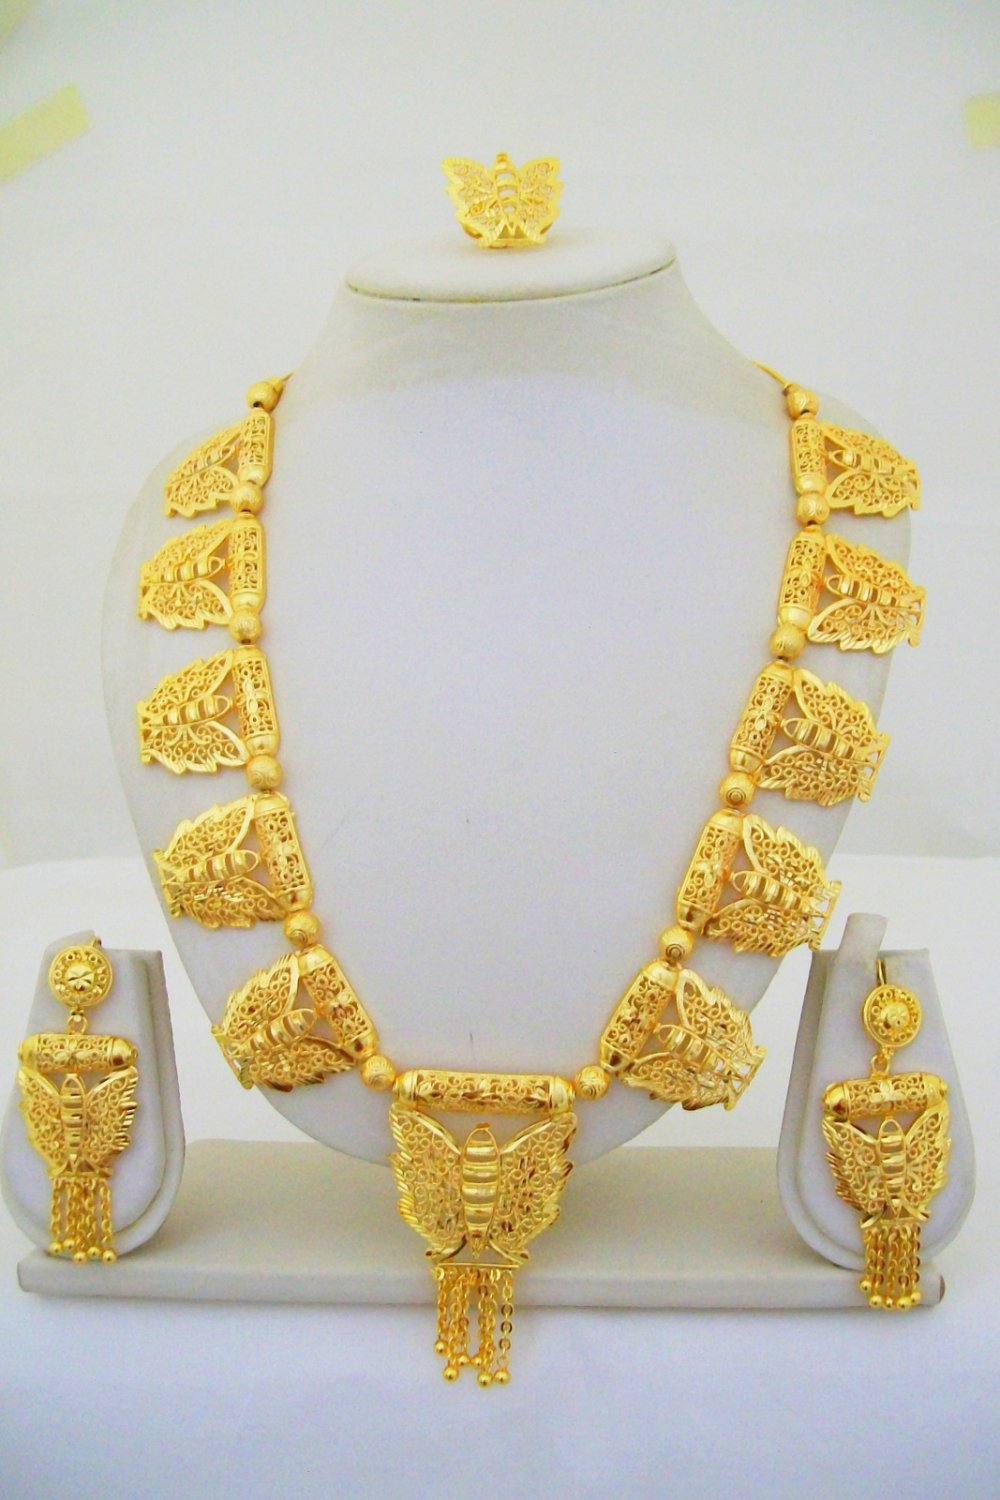 Gold Plated Beads Indian Rani Haar Necklace Bridal Long Filigree Vintage Jewelry Set